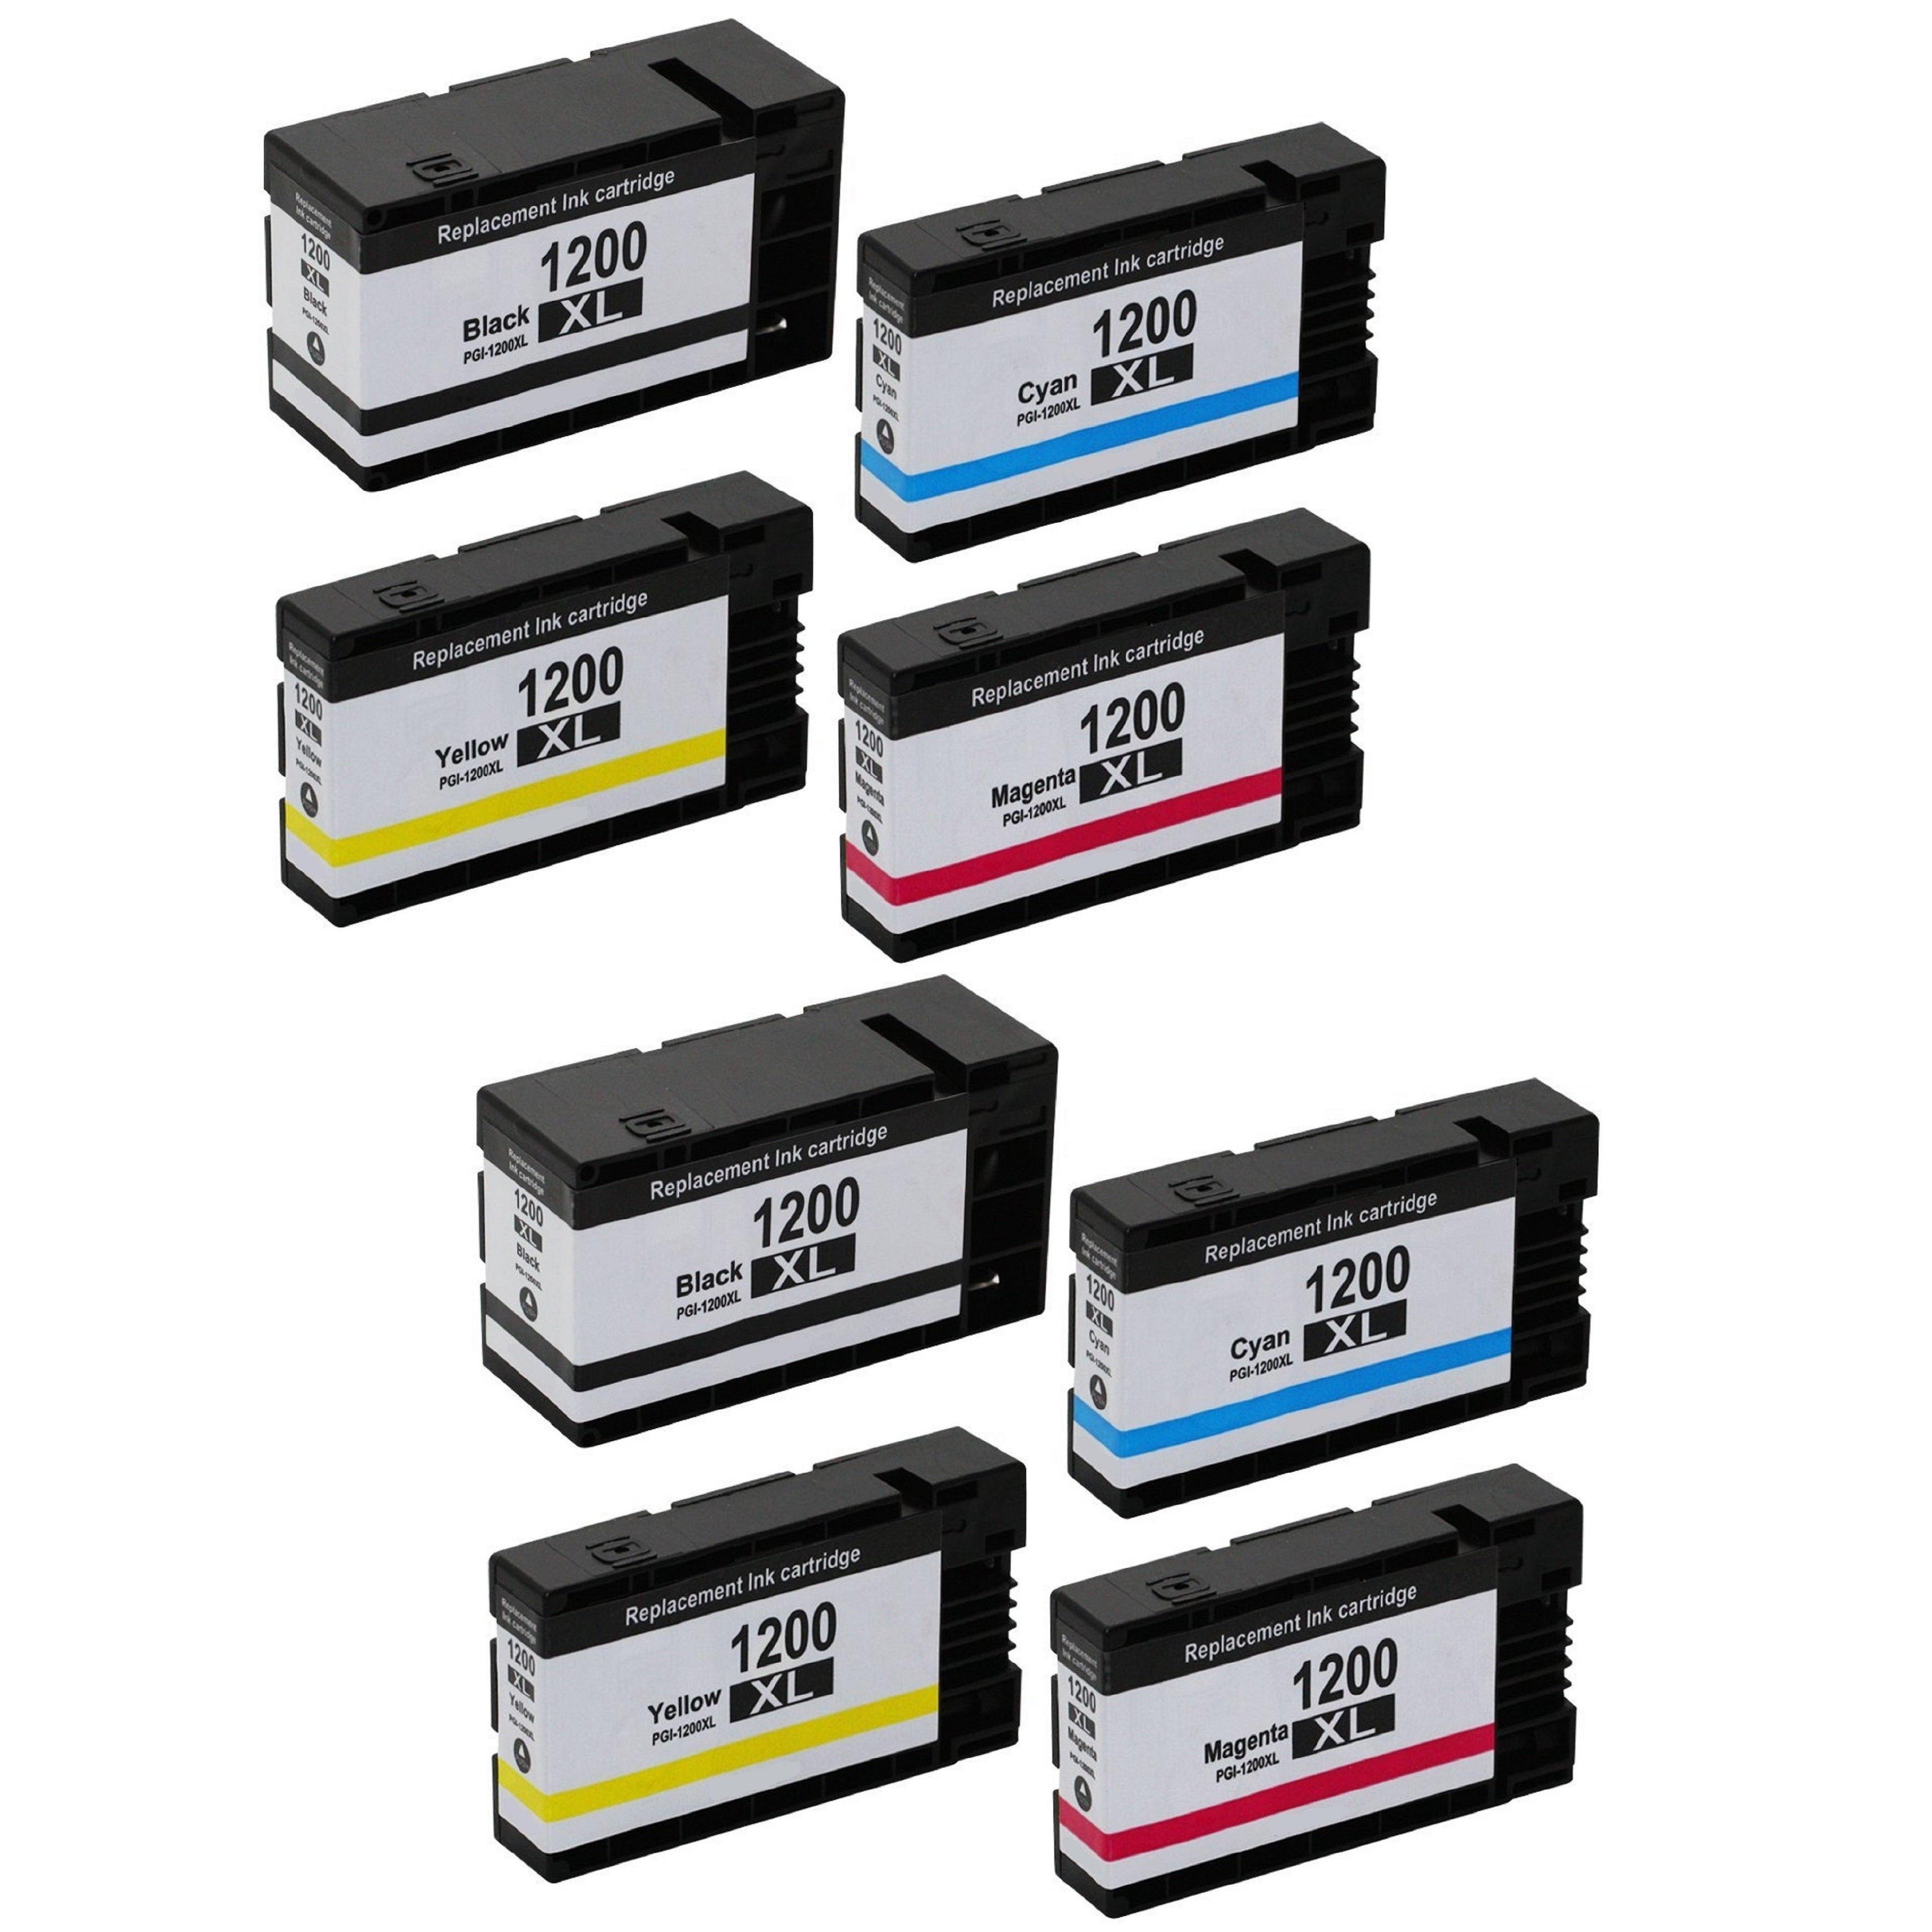 Shop Replacing Pgi 1200 1200xl Ink Cartridge Use For Canon Maxify Tinta Pg 746 Tricolour Original Mb2020 Mb2050 Mb2320 Mb2350 Series Printer Free Shipping On Orders Over 45